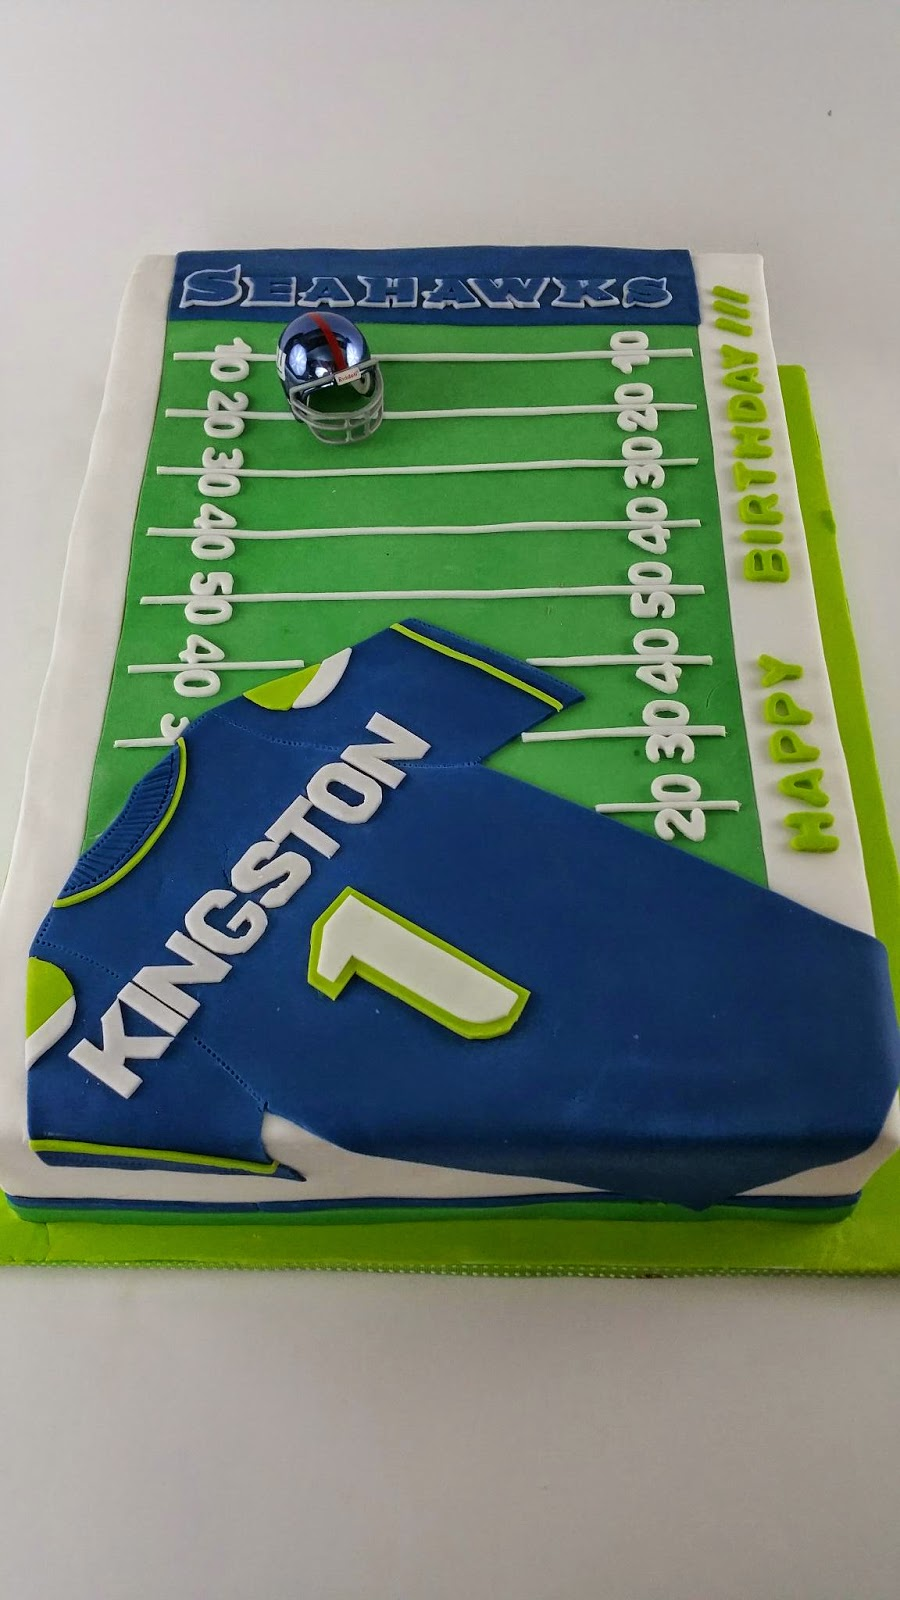 Cakes By Hotkist Seattle Seahawks Football Field Birthday Cake